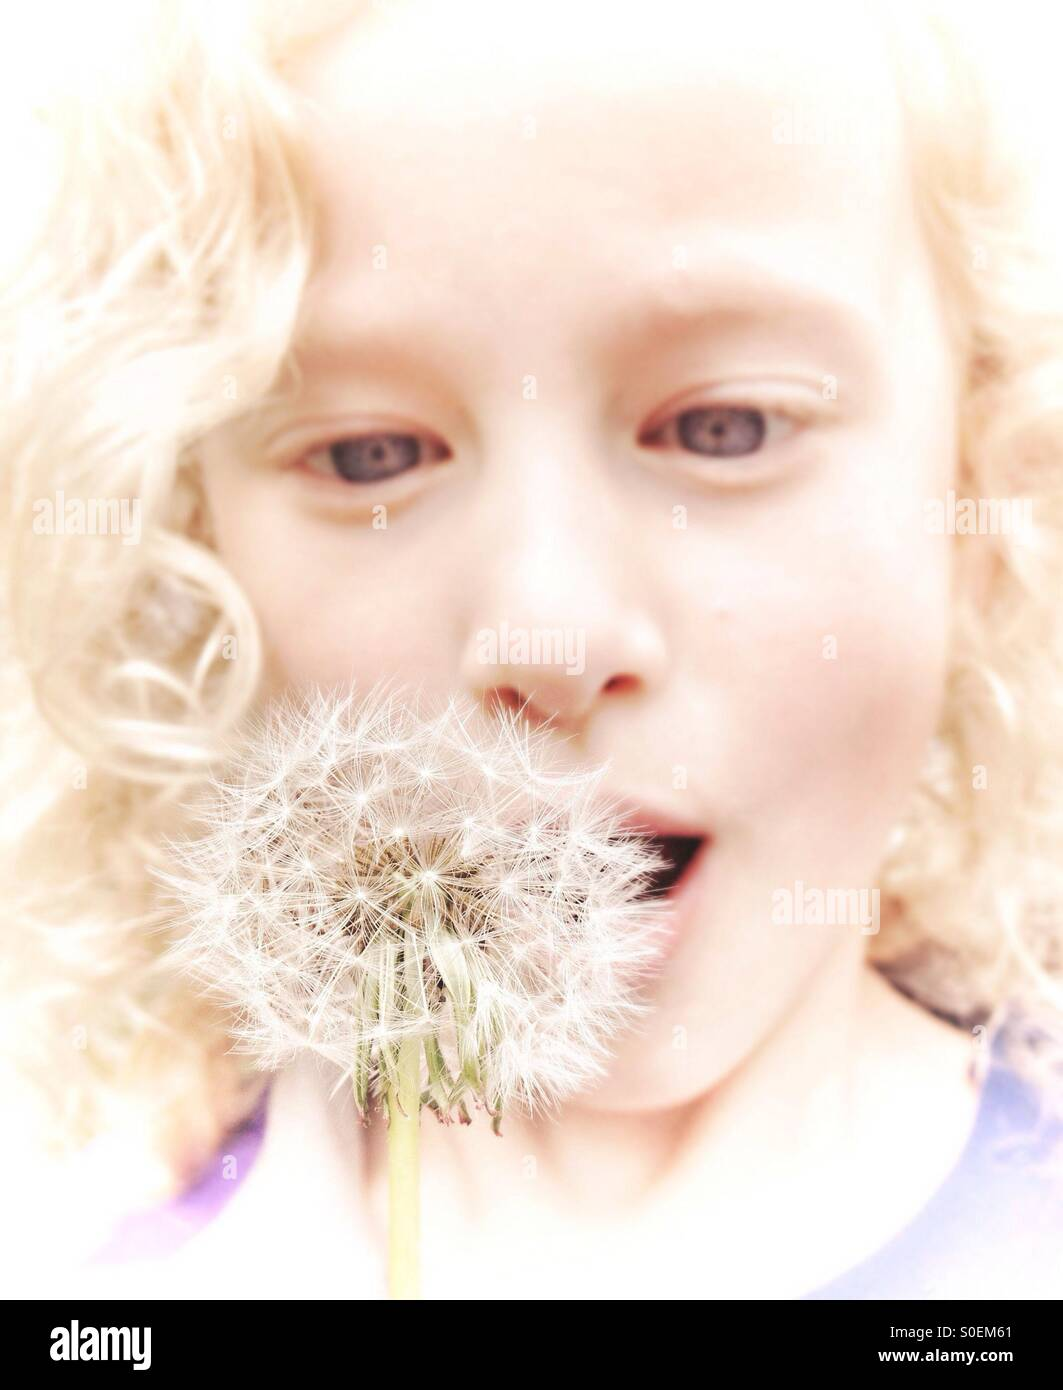 Young girl blowing on dandelion seed head - Stock Image